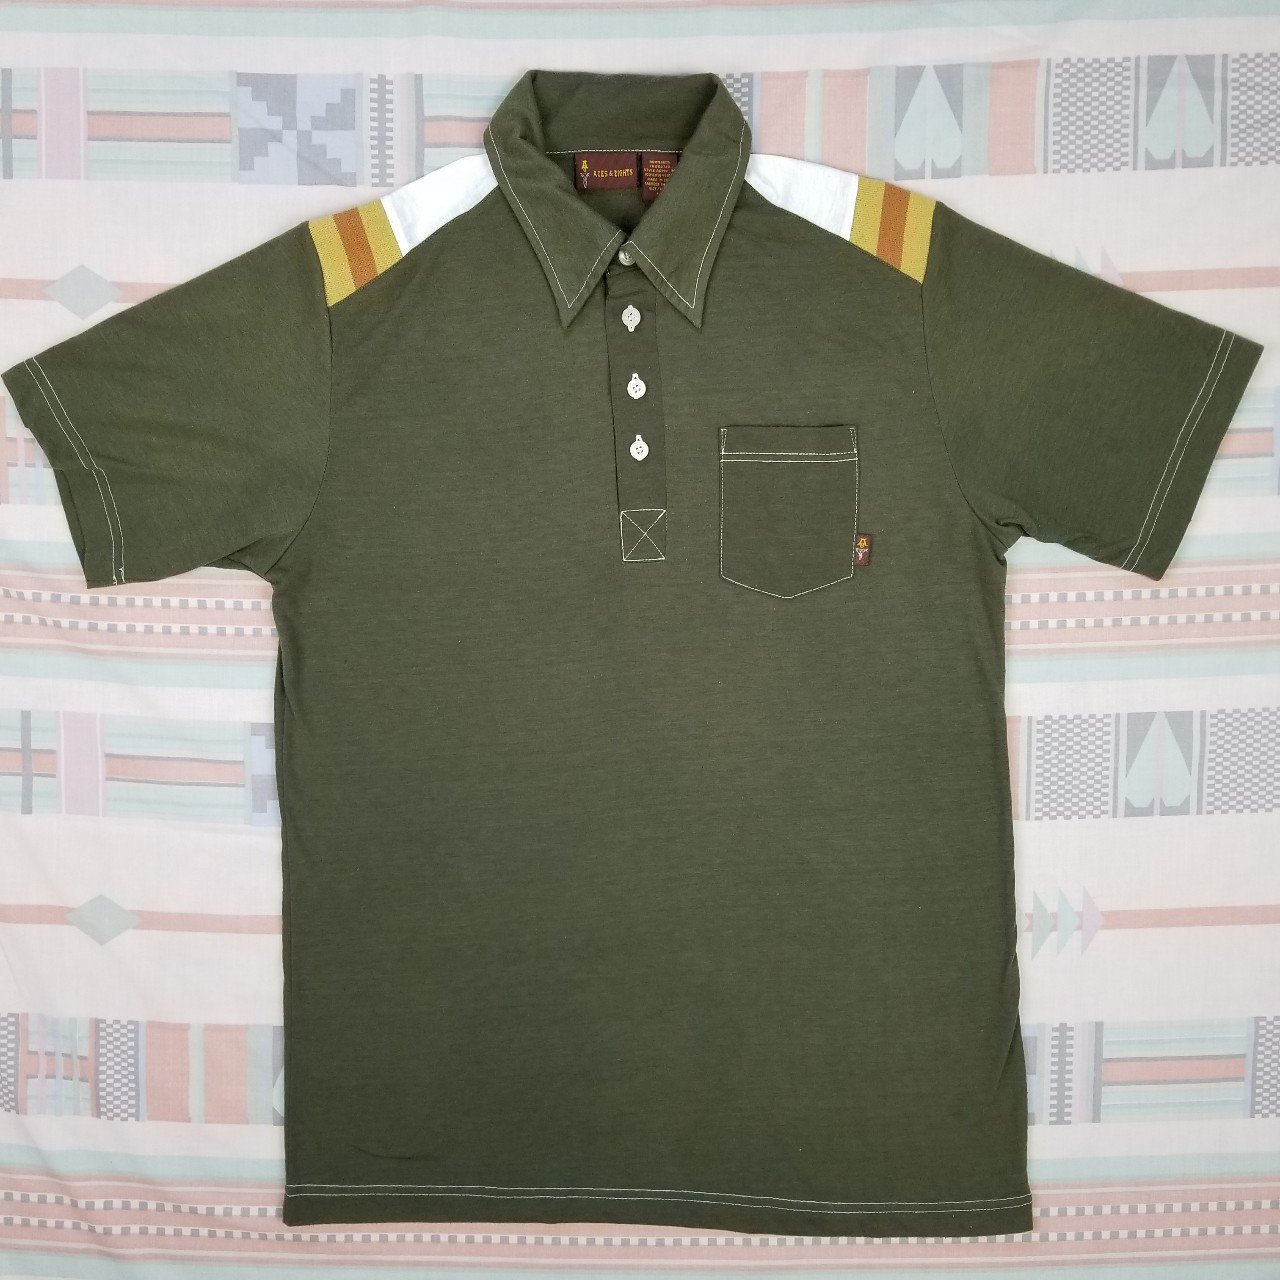 Vintage 90s Does 70s Polo Style T Shirt Olive Green Shirt A Depop